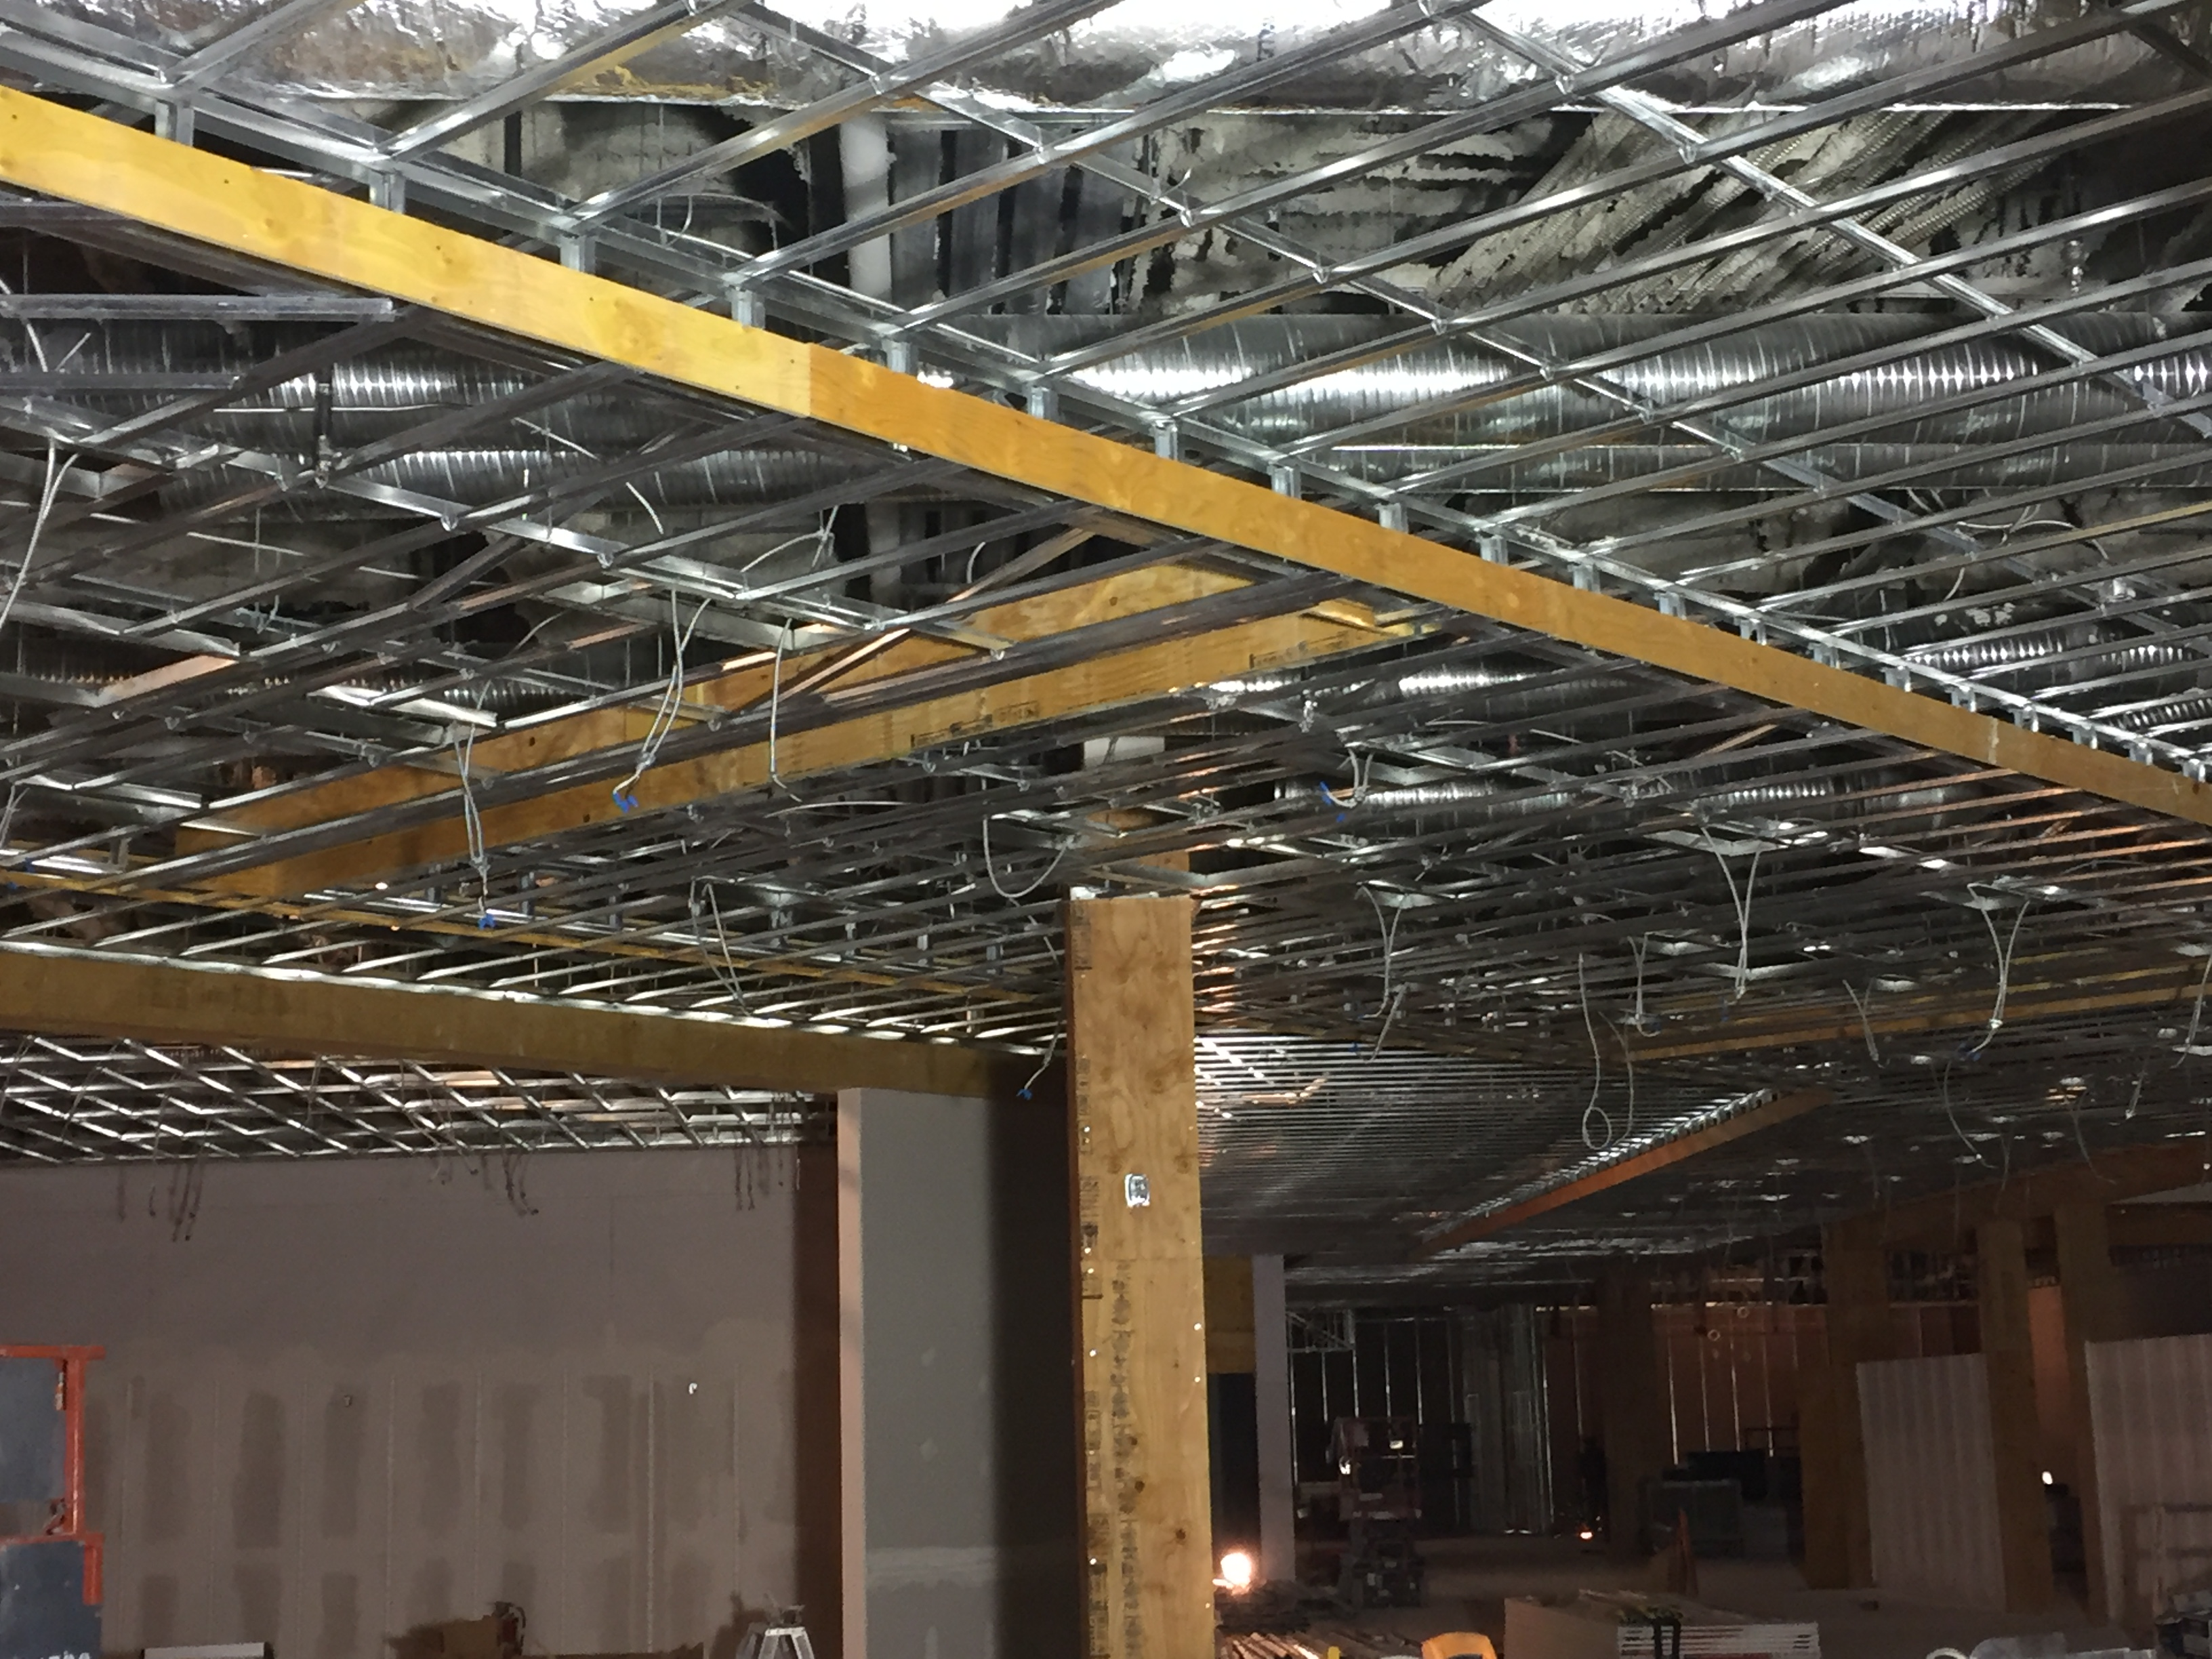 BMP Furring Channel was used in the construction of the ceiling